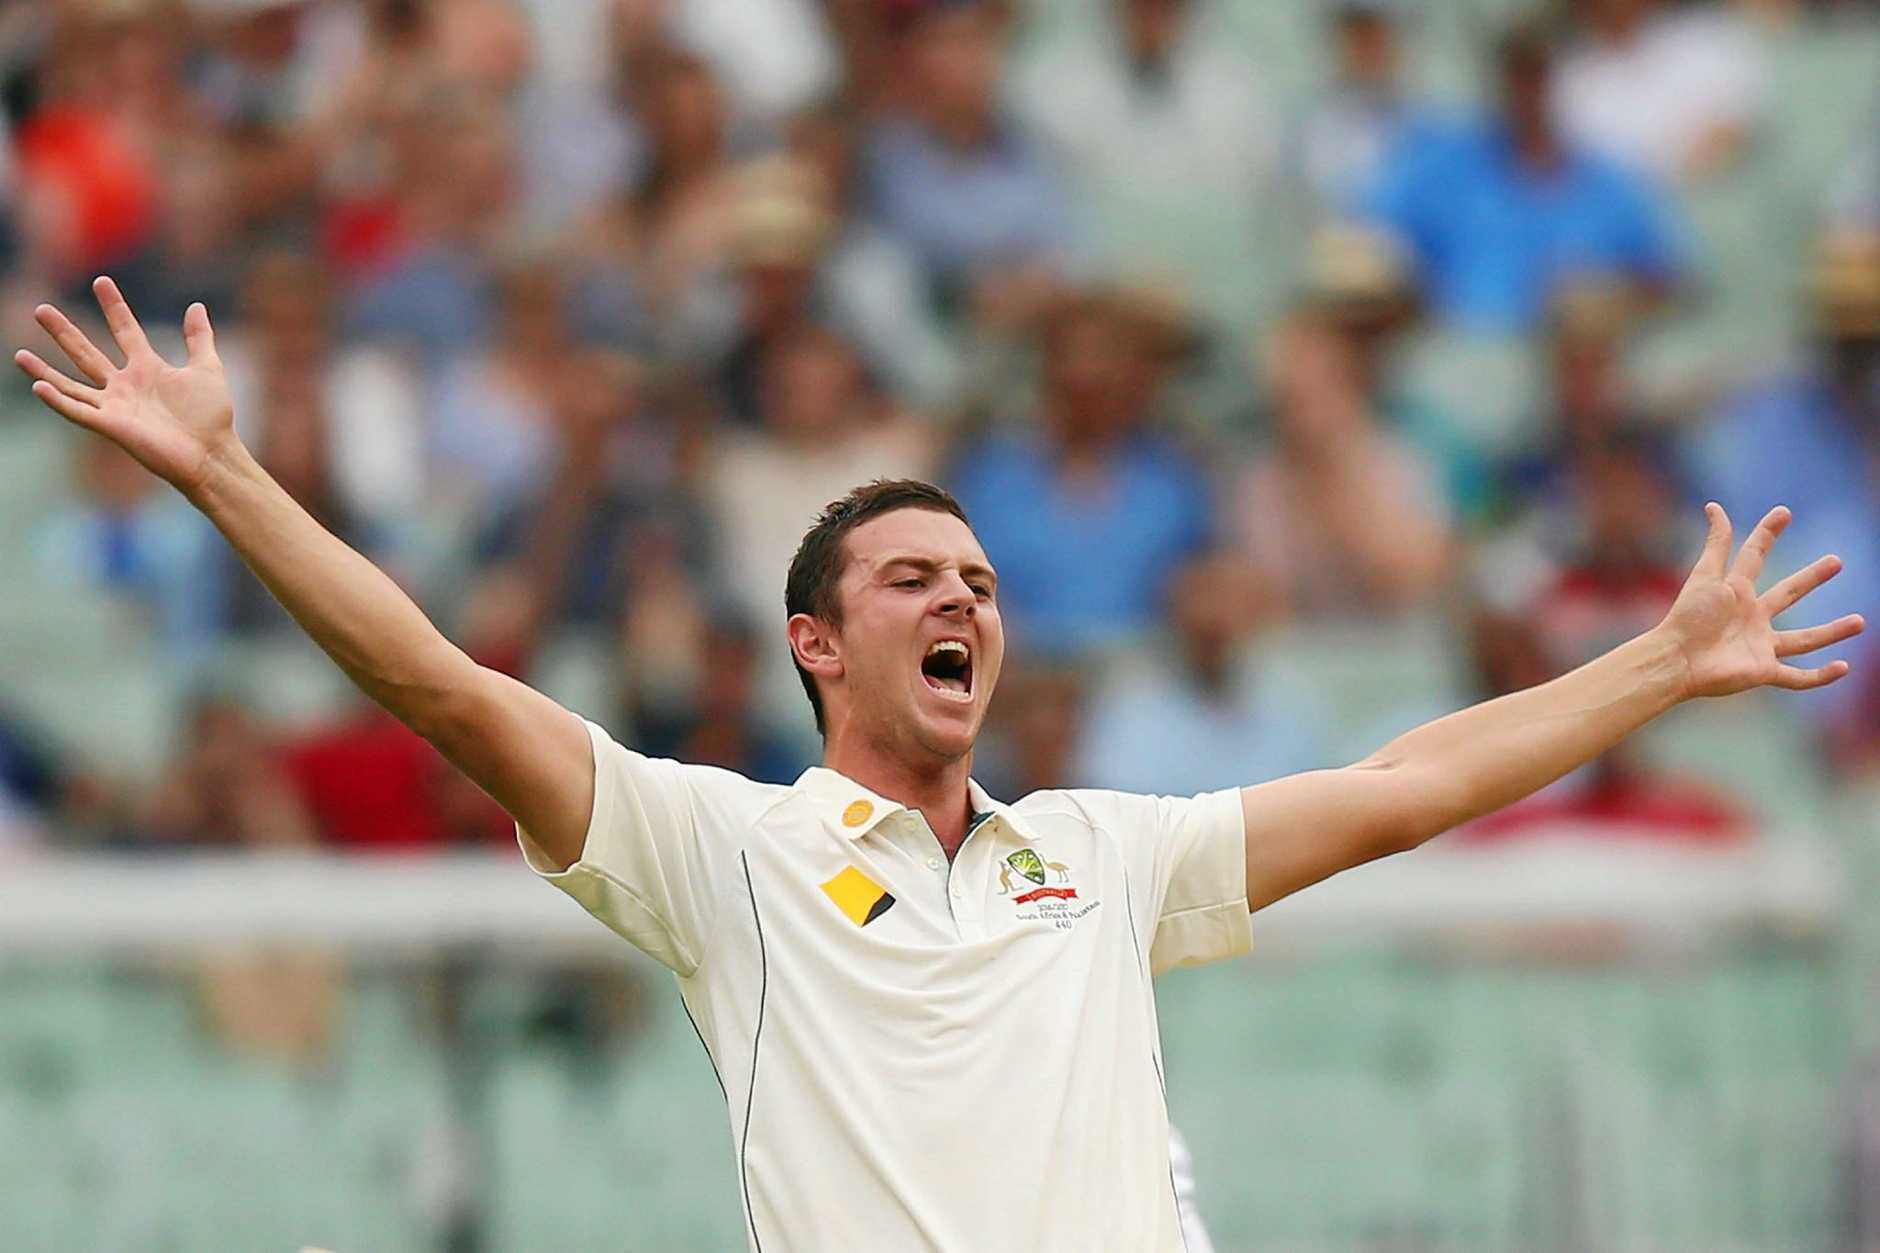 Josh Hazelwood of Australia appeals unsuccessfully for the wicket of Asad Shafiq of Pakistan at the MCG.